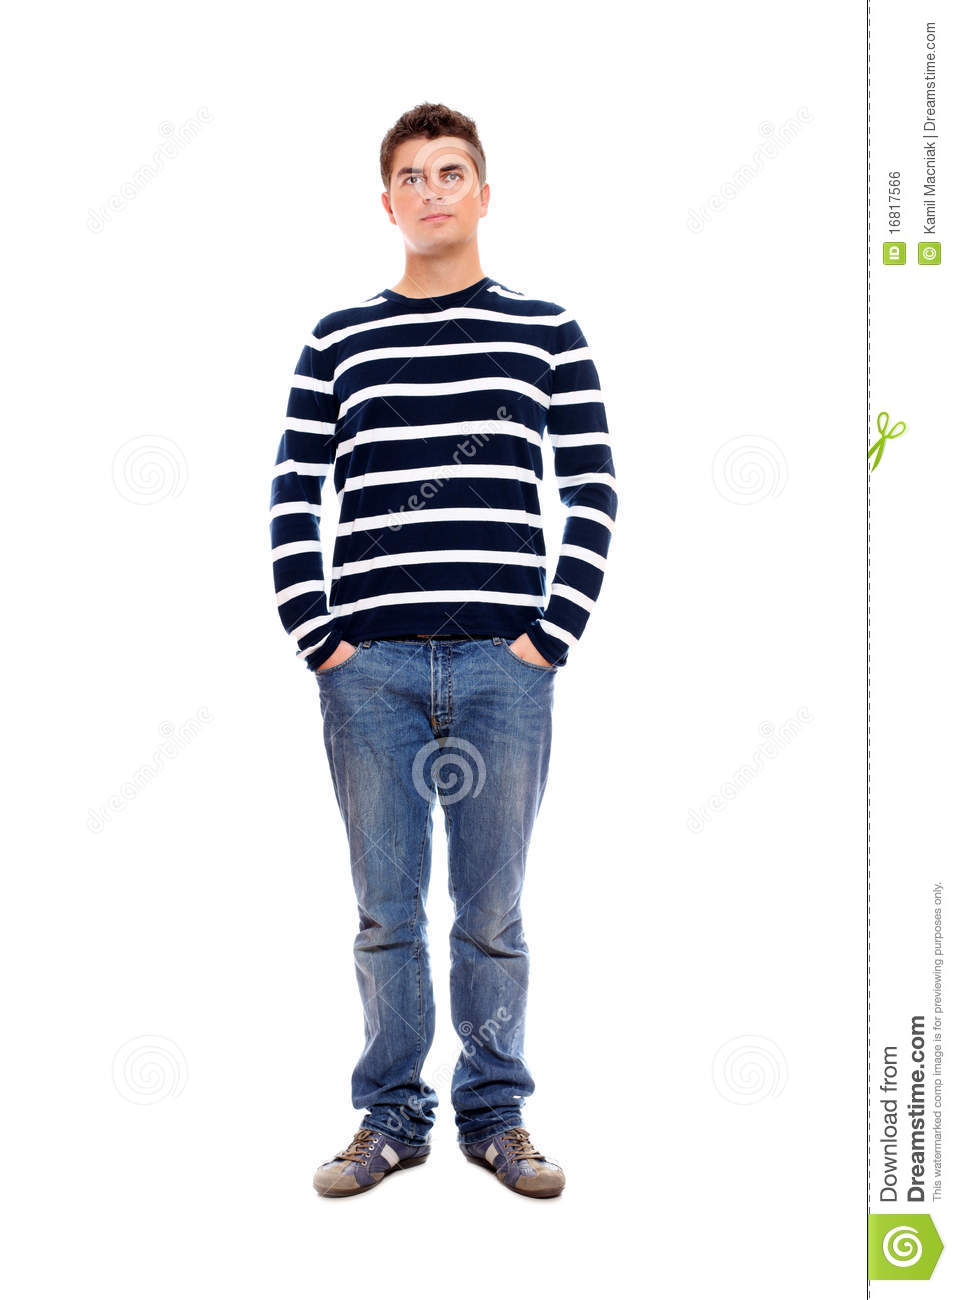 Young Man Standing Firmly With Hands In Pockets Stock Photo - Image